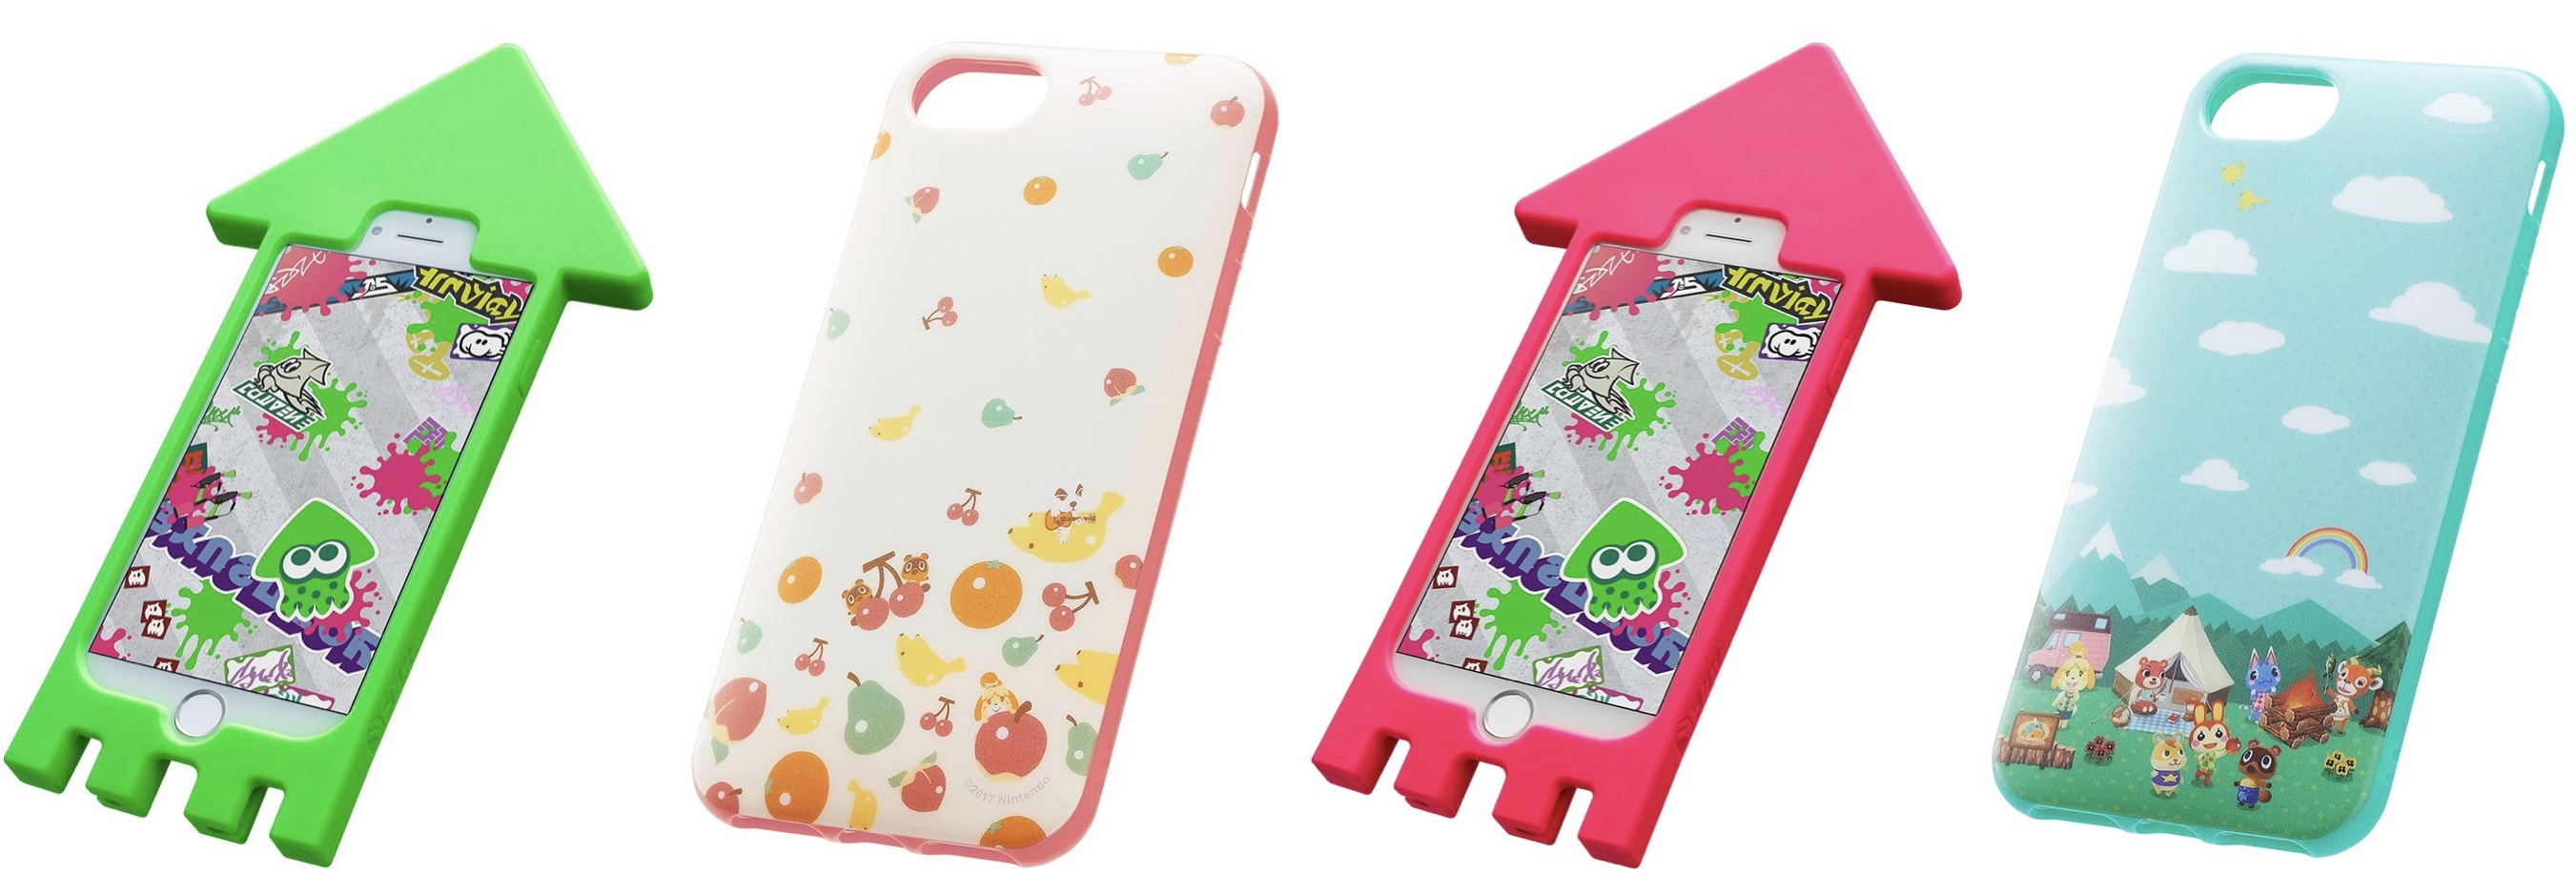 Nintendo iPhone cases